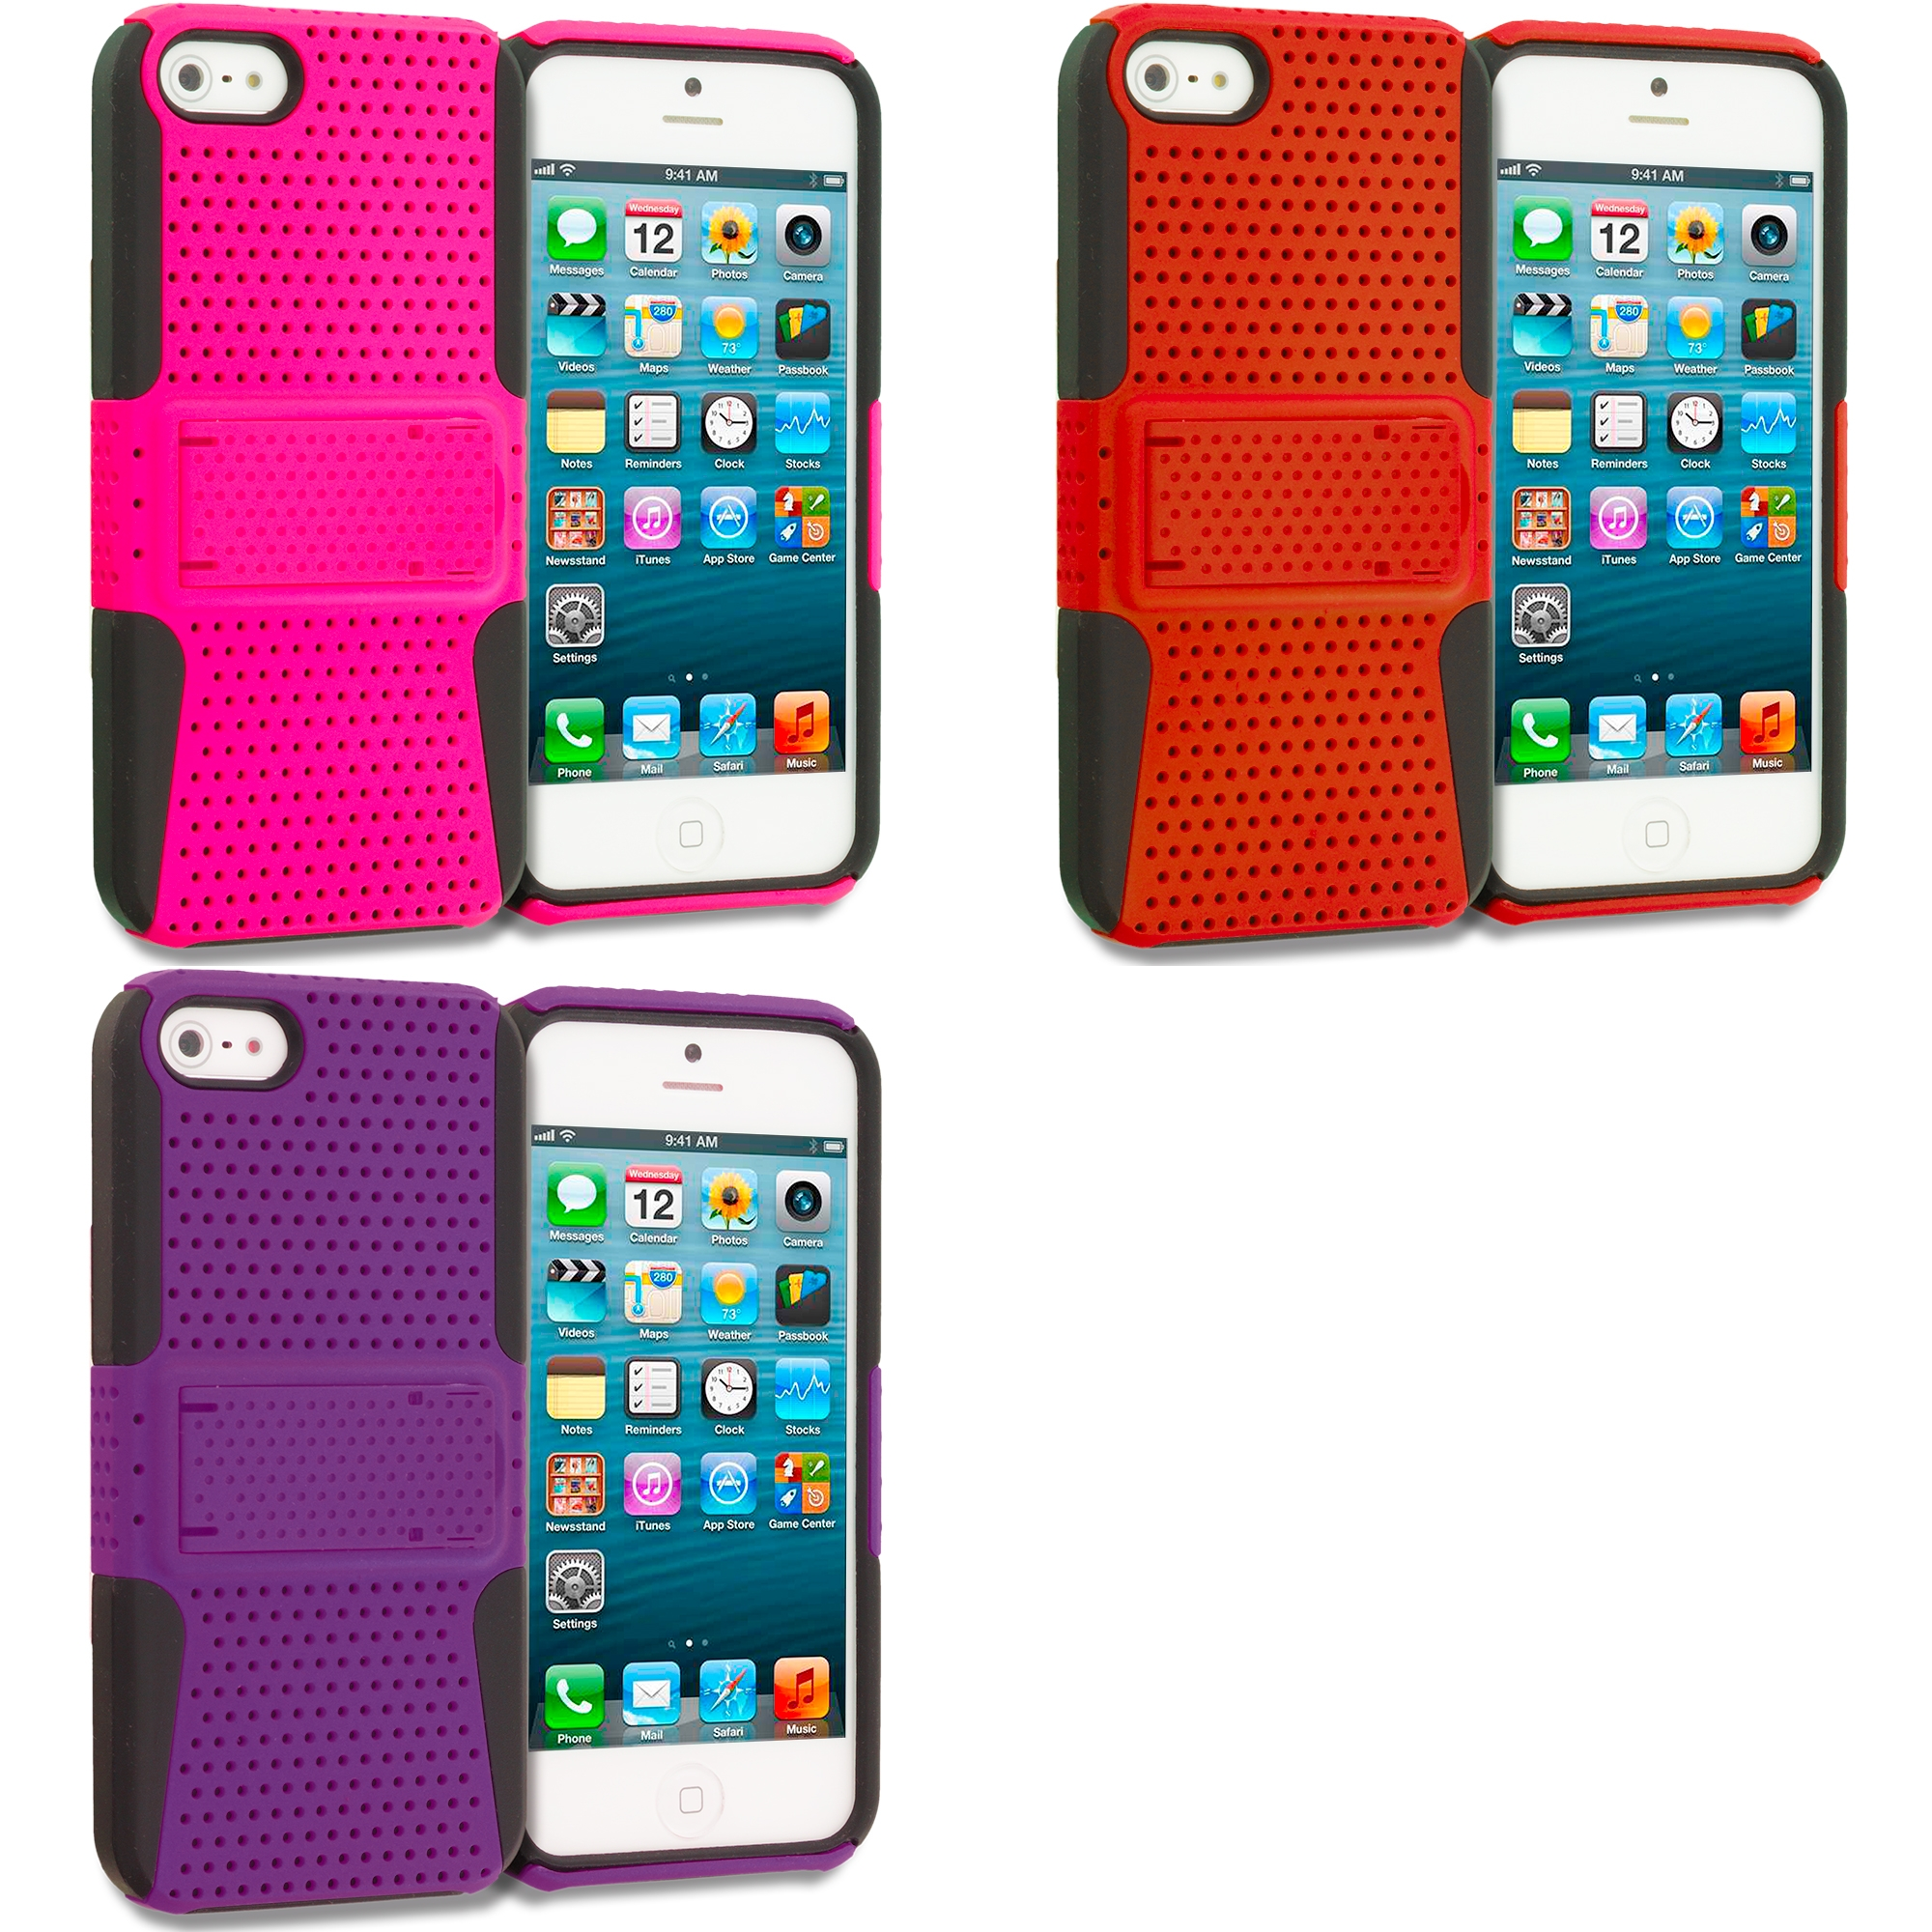 Apple iPhone 5/5S/SE Combo Pack : Black / Hot Pink Hybrid Mesh Hard/Soft Case Cover with Stand